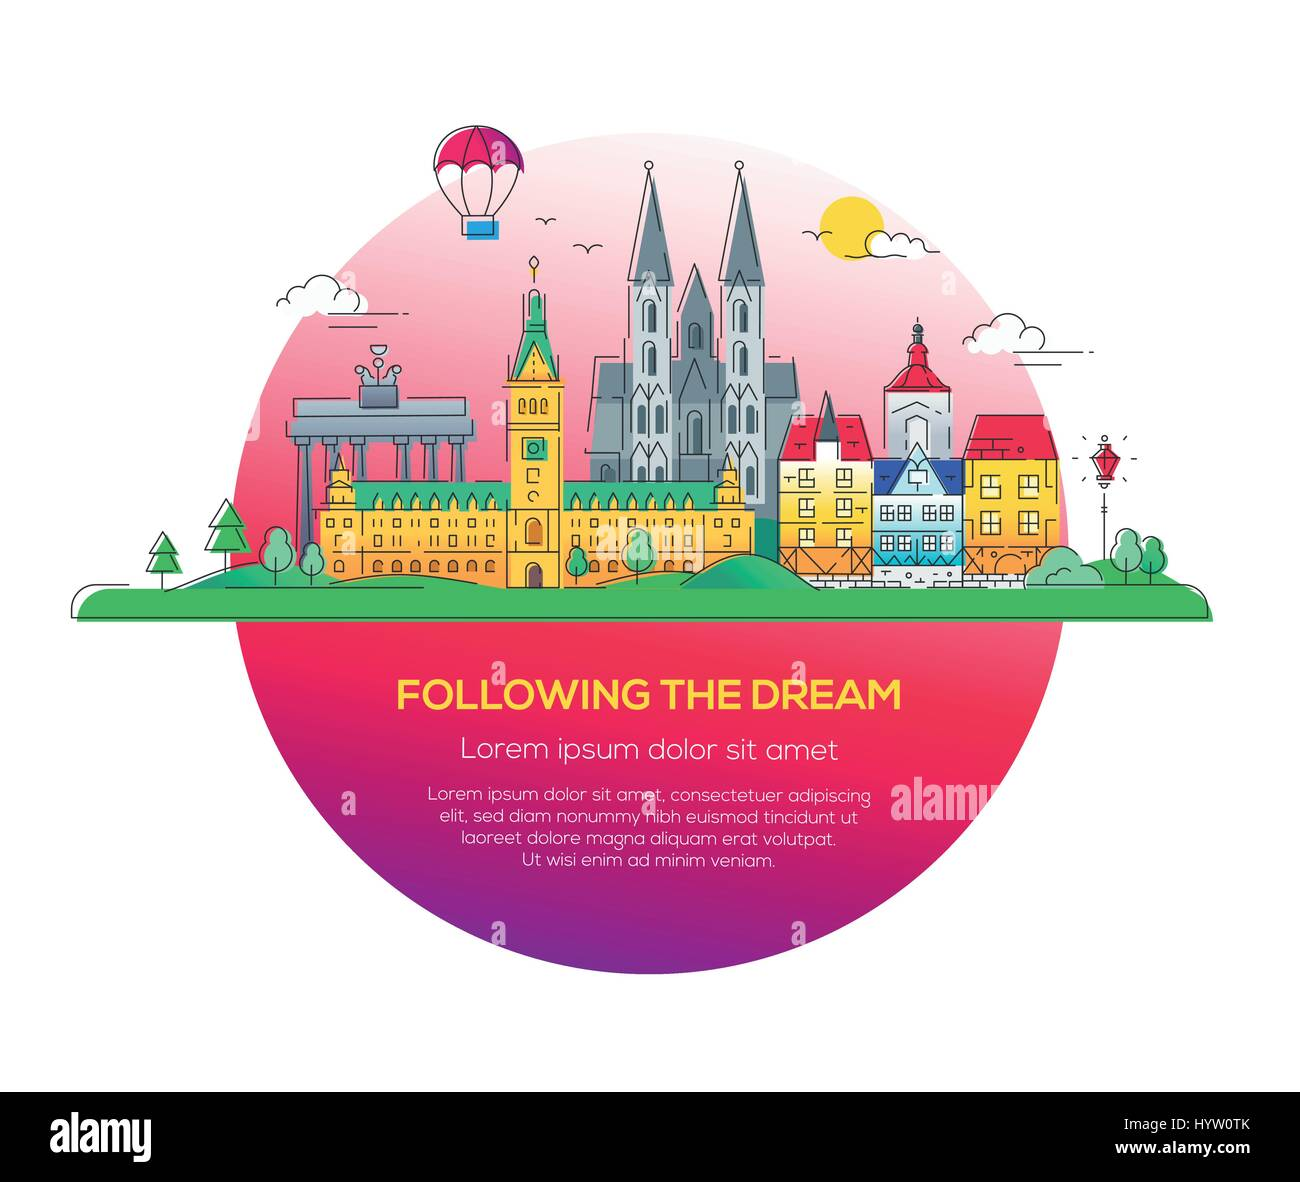 Following the dream - vector line travel illustration - Stock Image